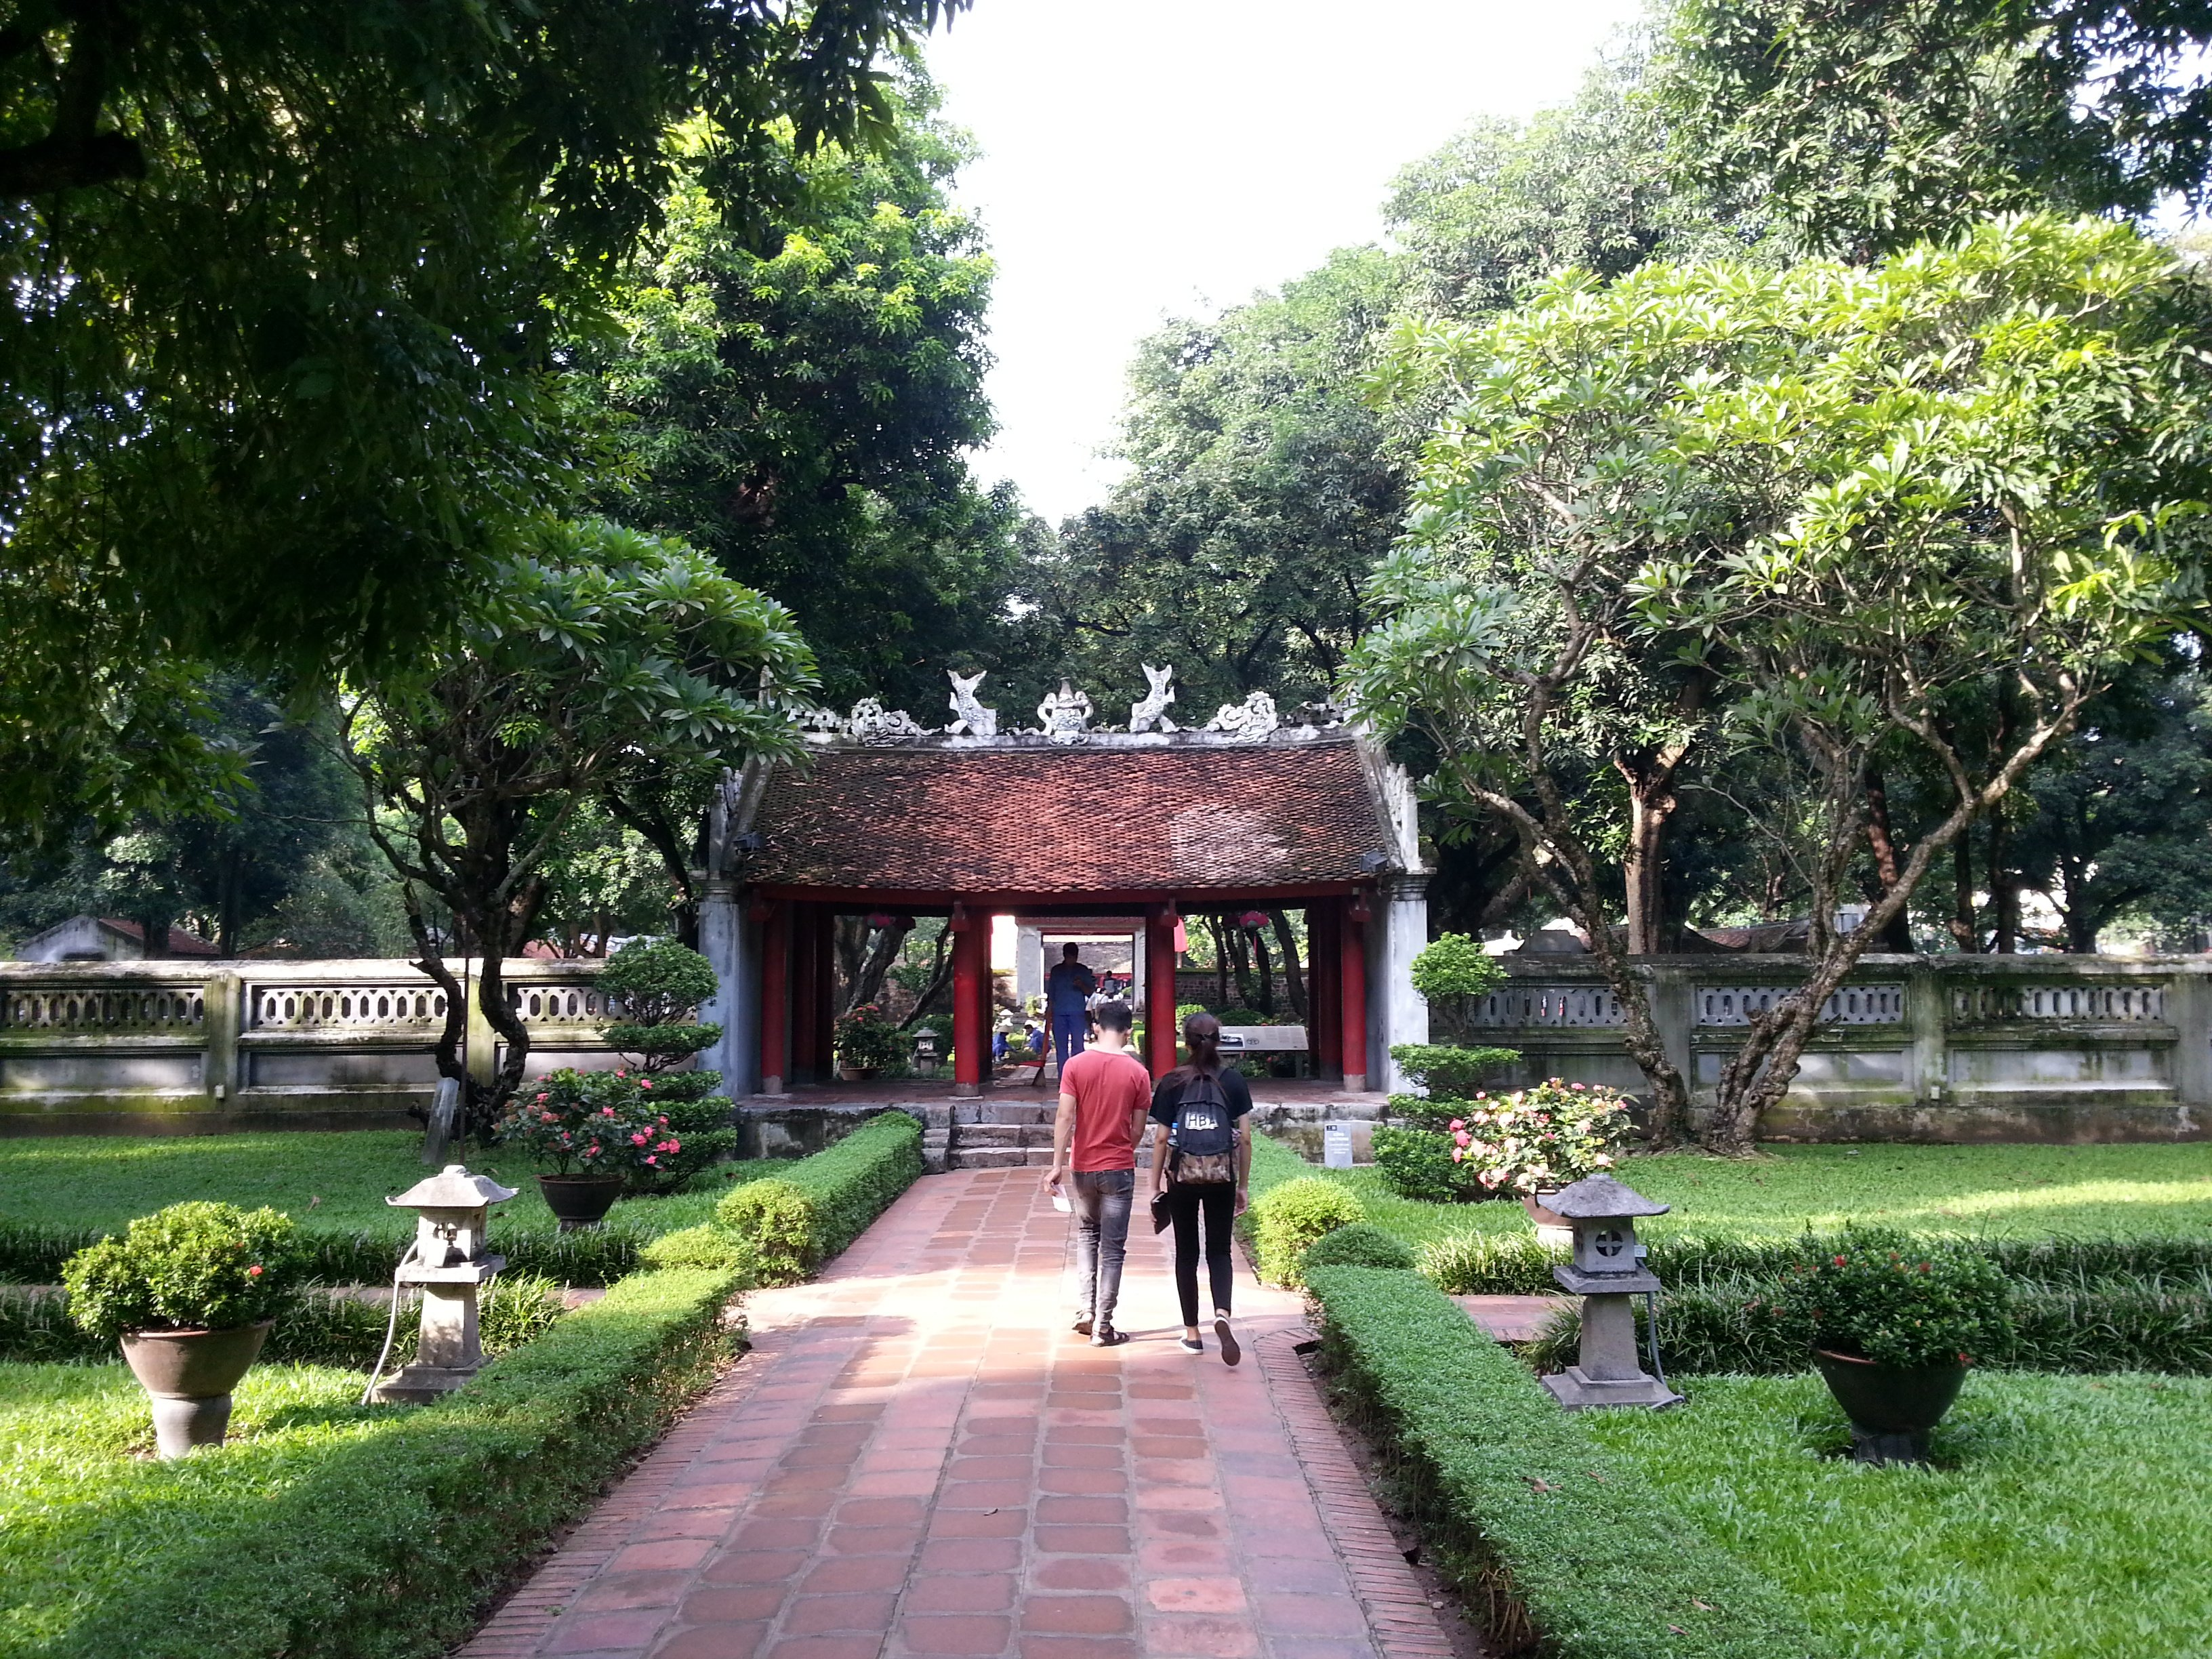 Entrance to the Second Courtyard of The Temple of Literature